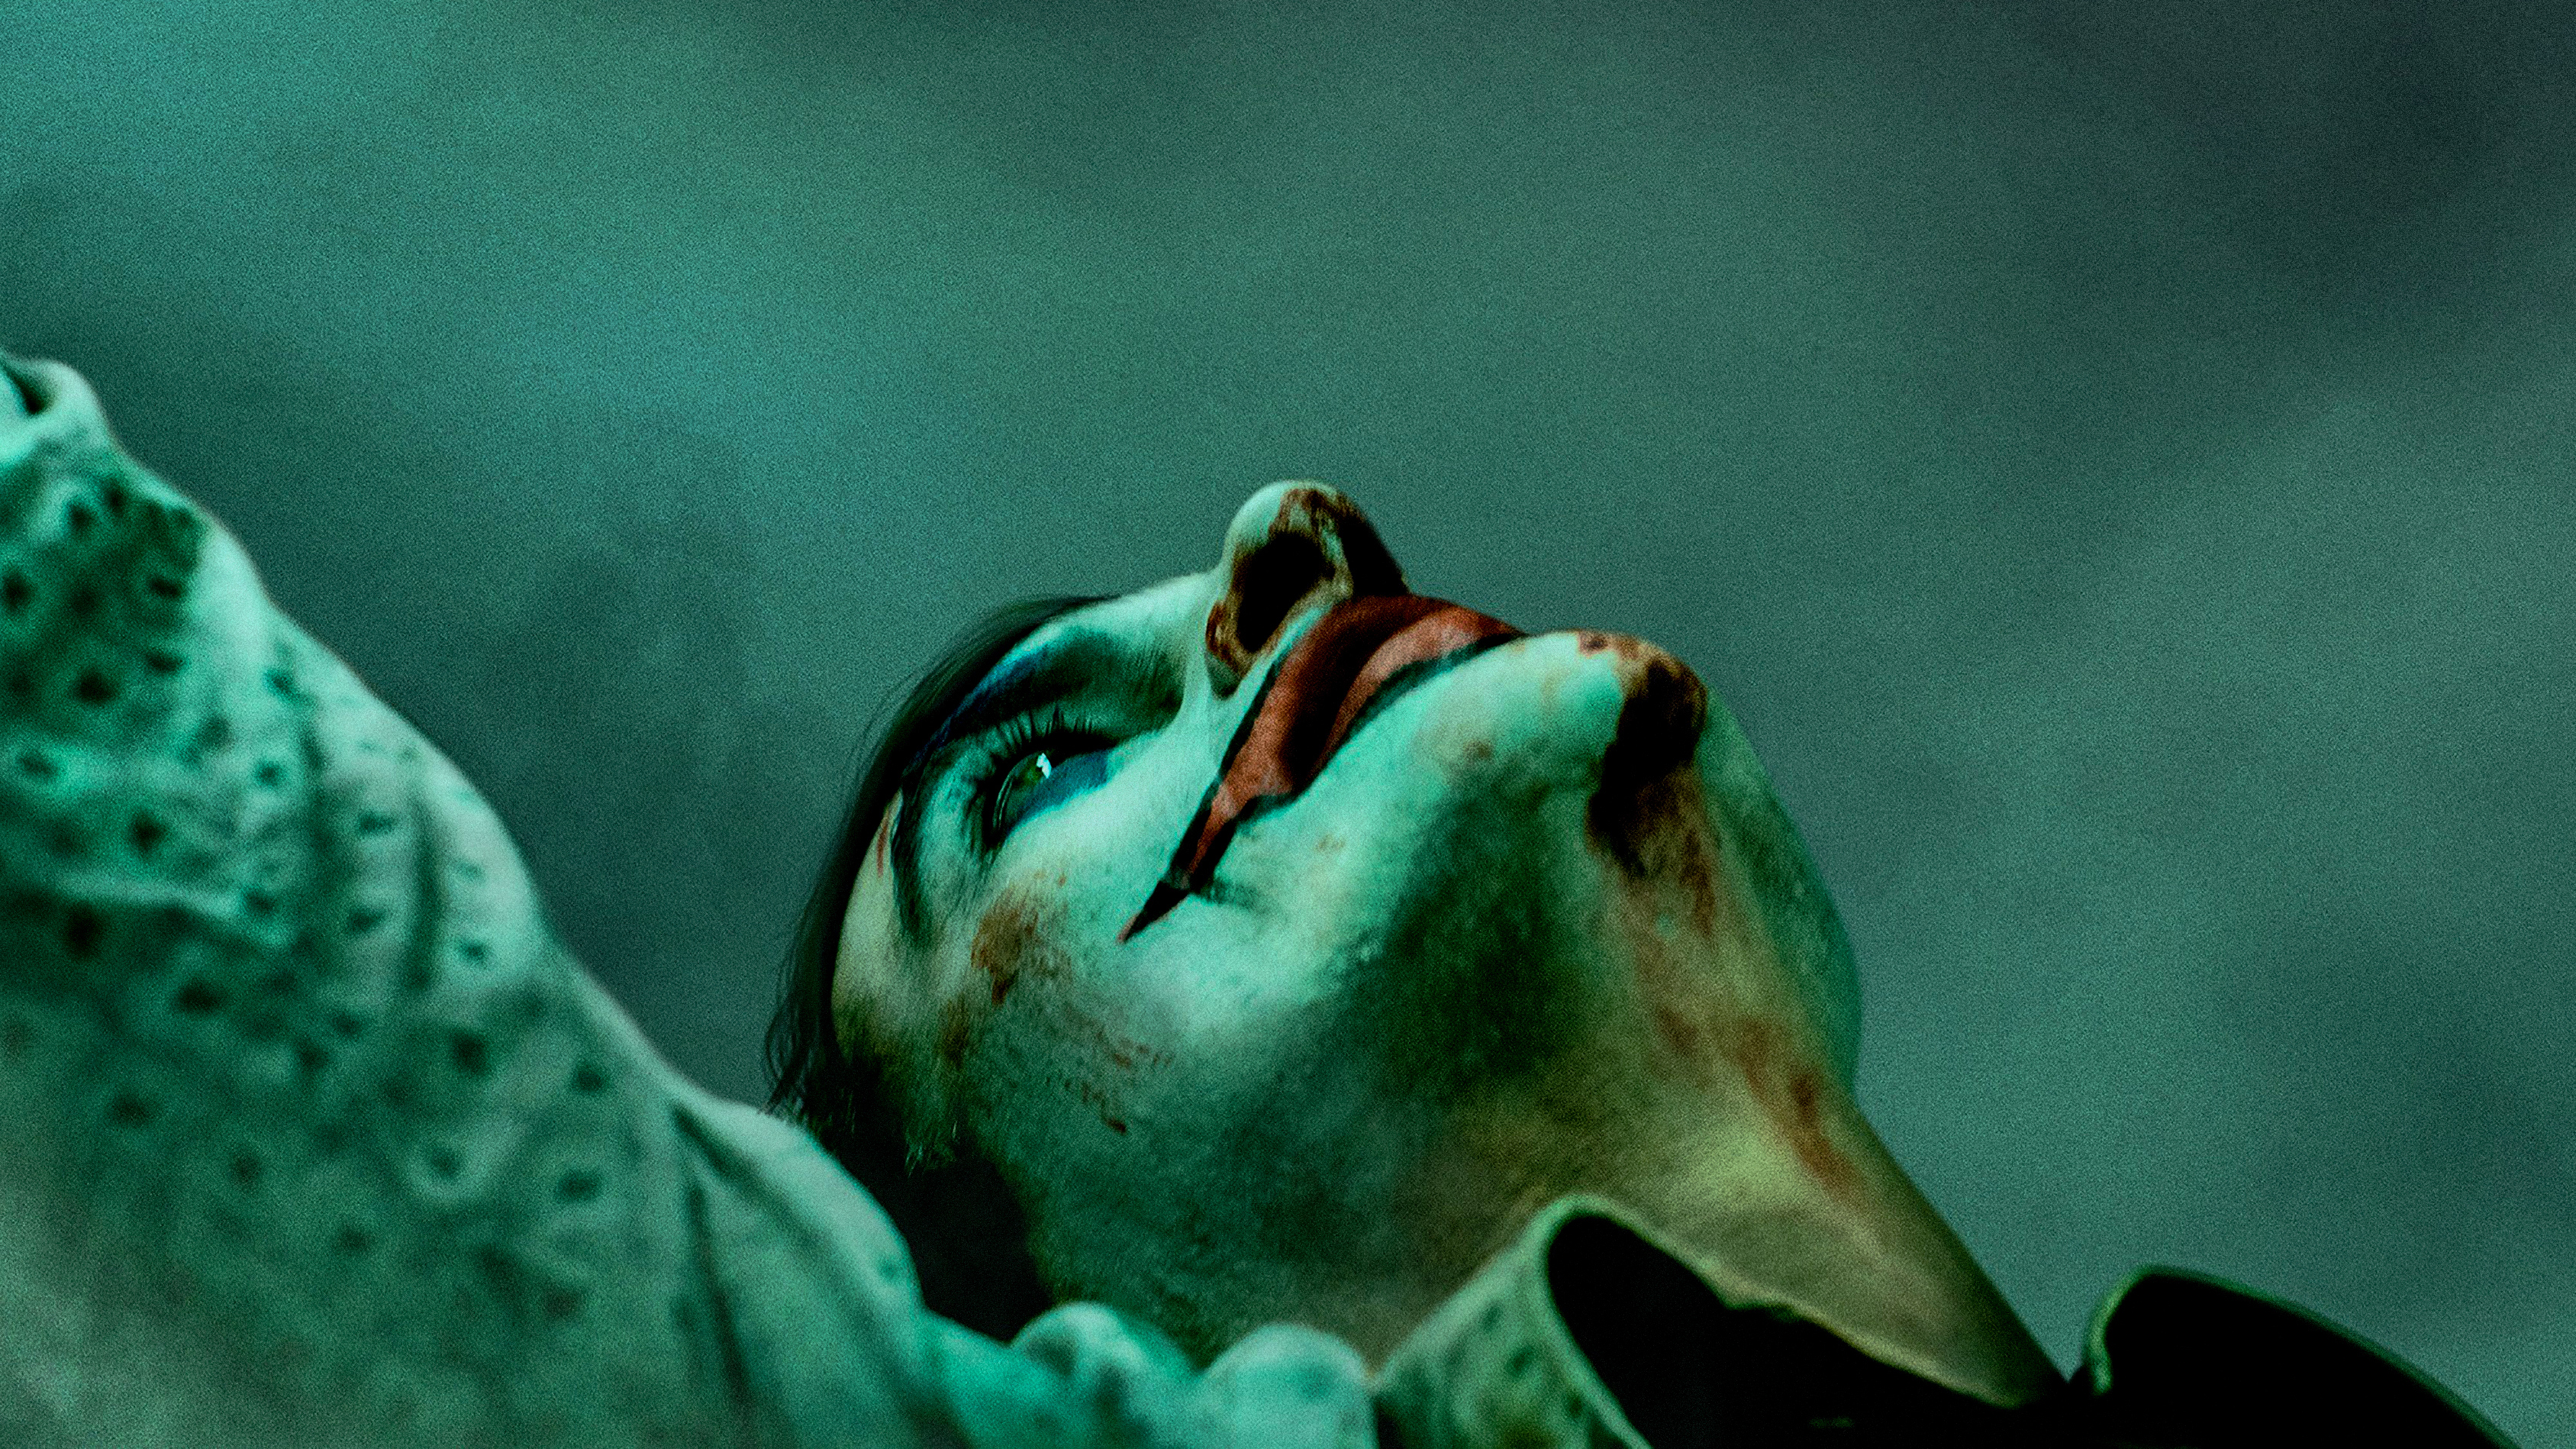 Joker Joaquin Phoenix 2019 4k Hd Movies 4k Wallpapers